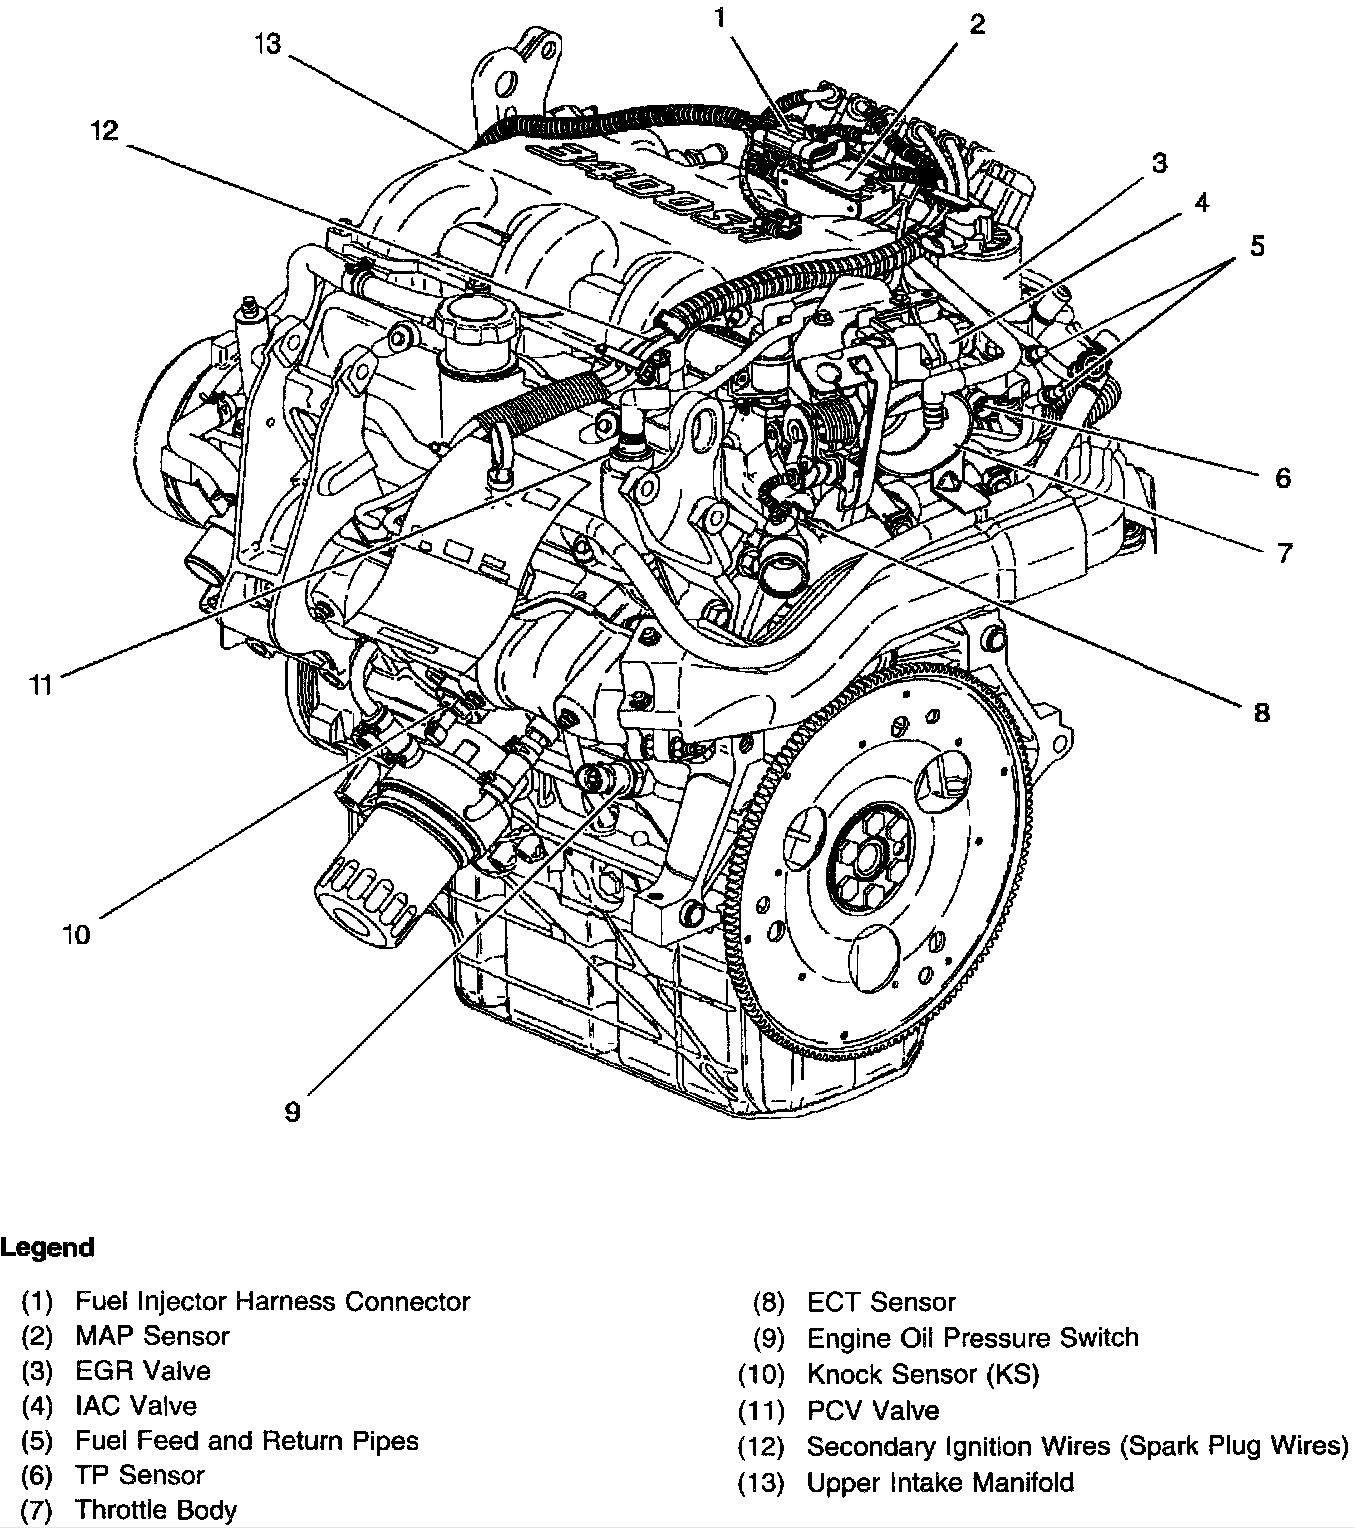 hight resolution of engine diagram v6 wiring diagram mega3400 v6 dohc engine diagram wiring diagram expert diagram v6 engine